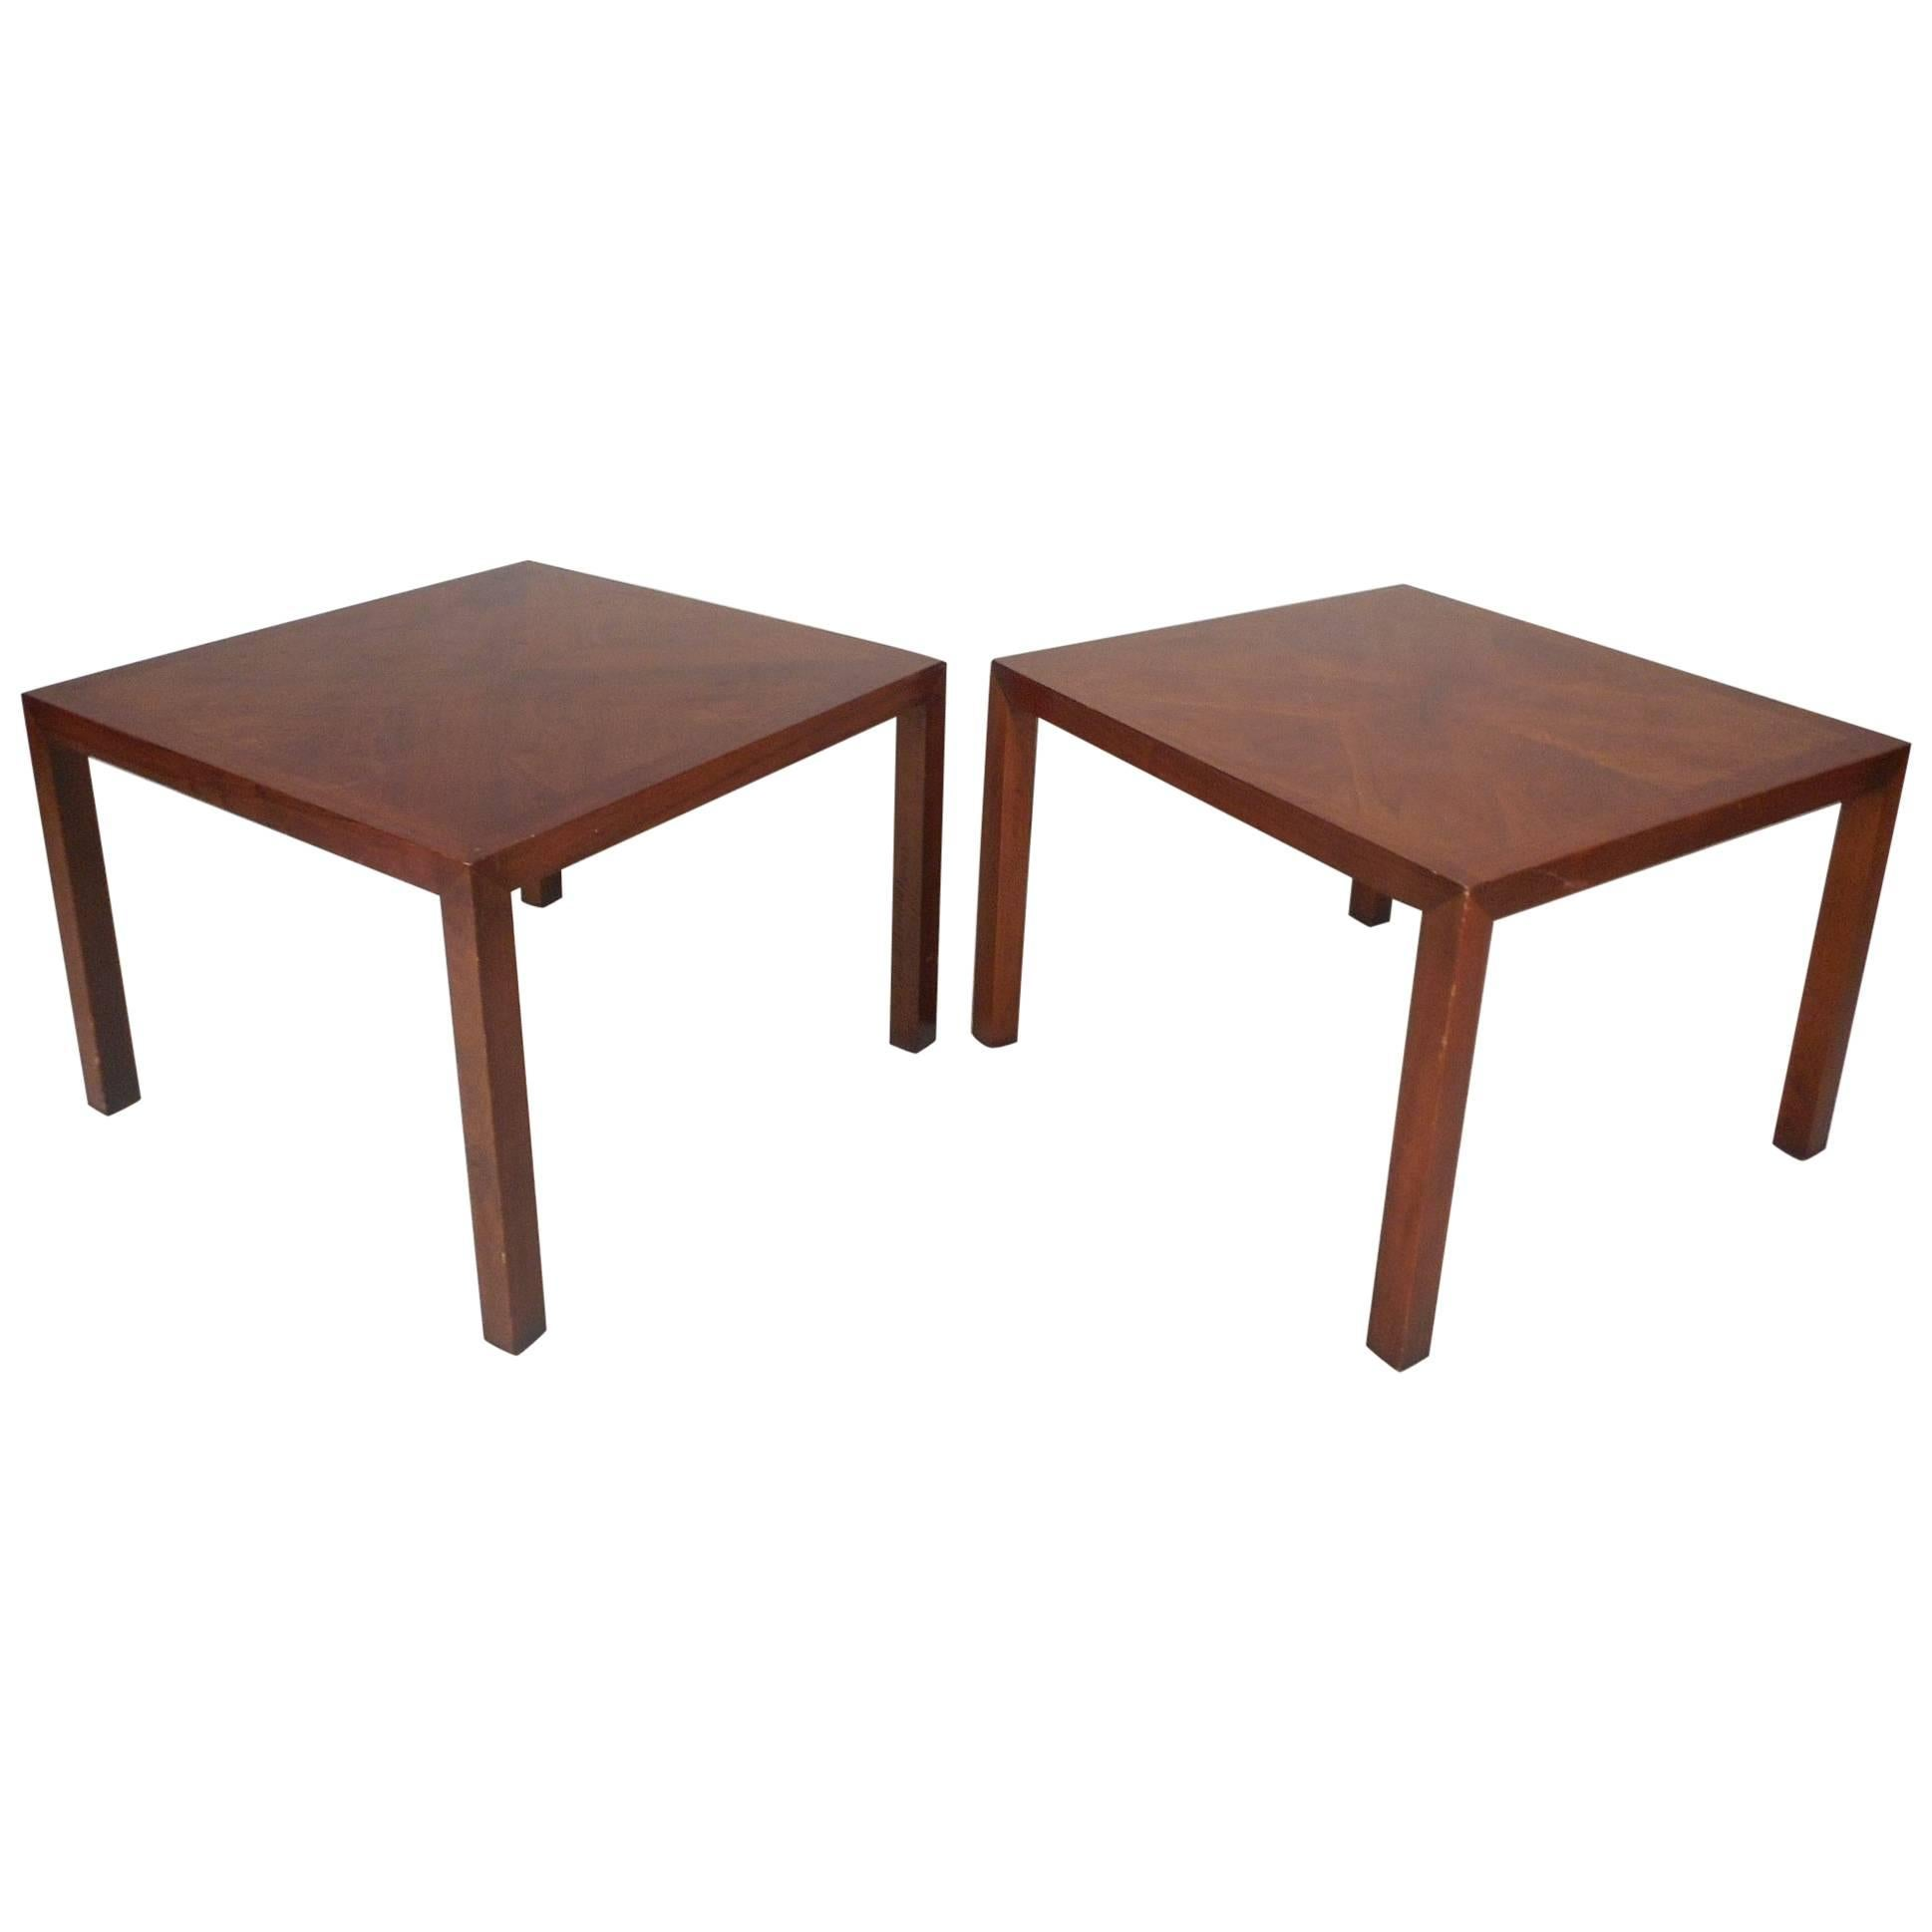 Mid-Century Modern Square Walnut End Tables by Lane Furniture